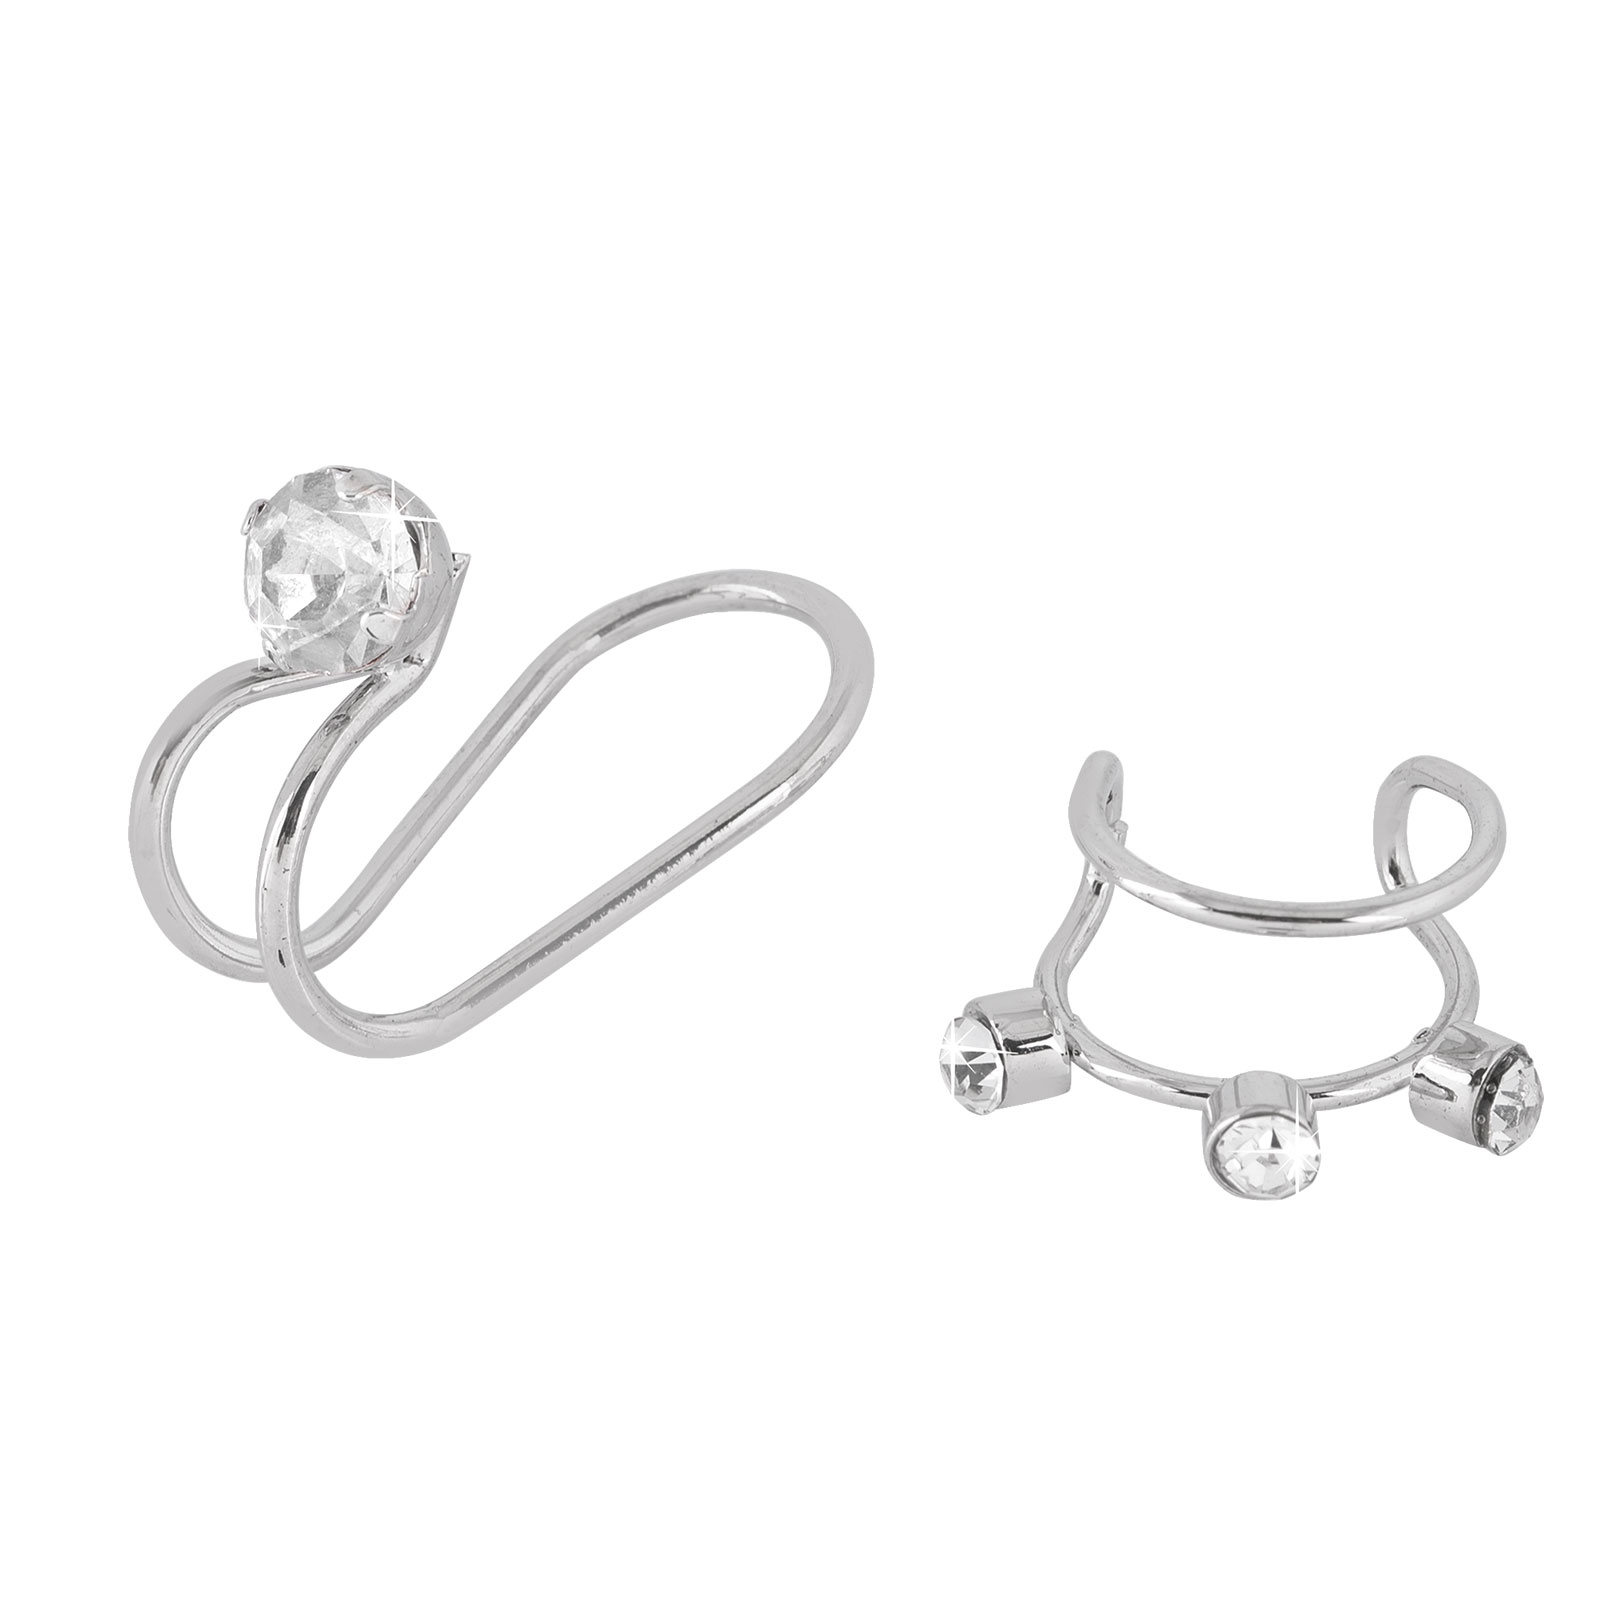 2-pack Ear cuffs Montini